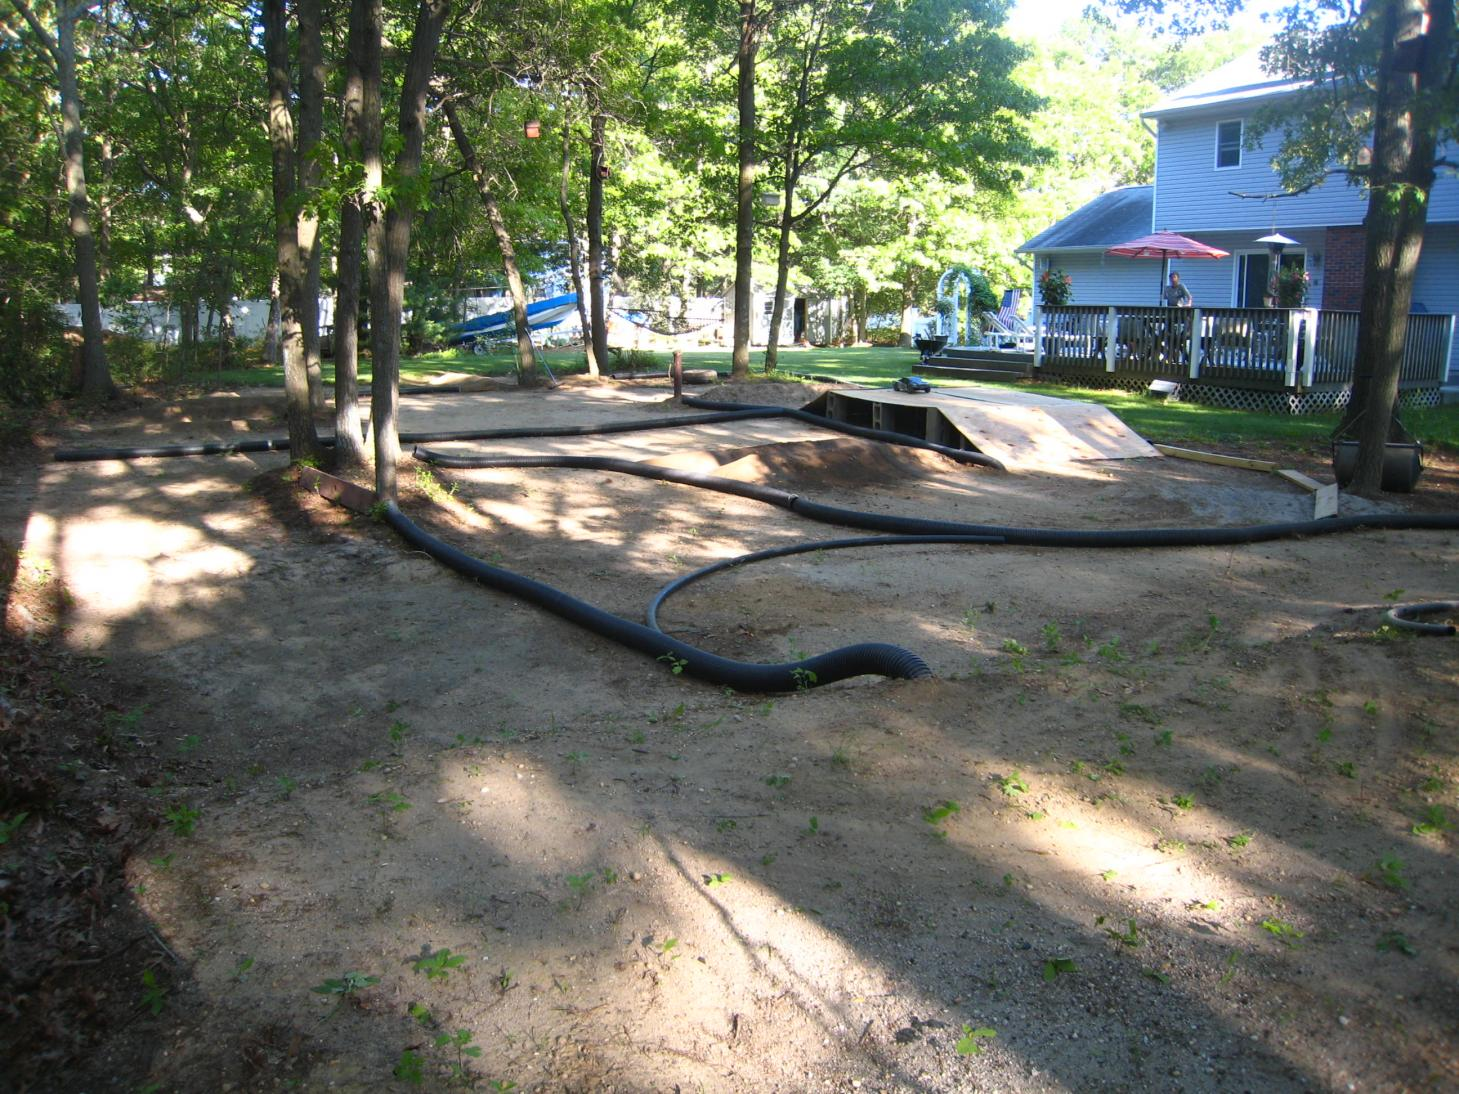 Awesome Backyard Images : Awesome Backyard Track!  RC Tech Forums